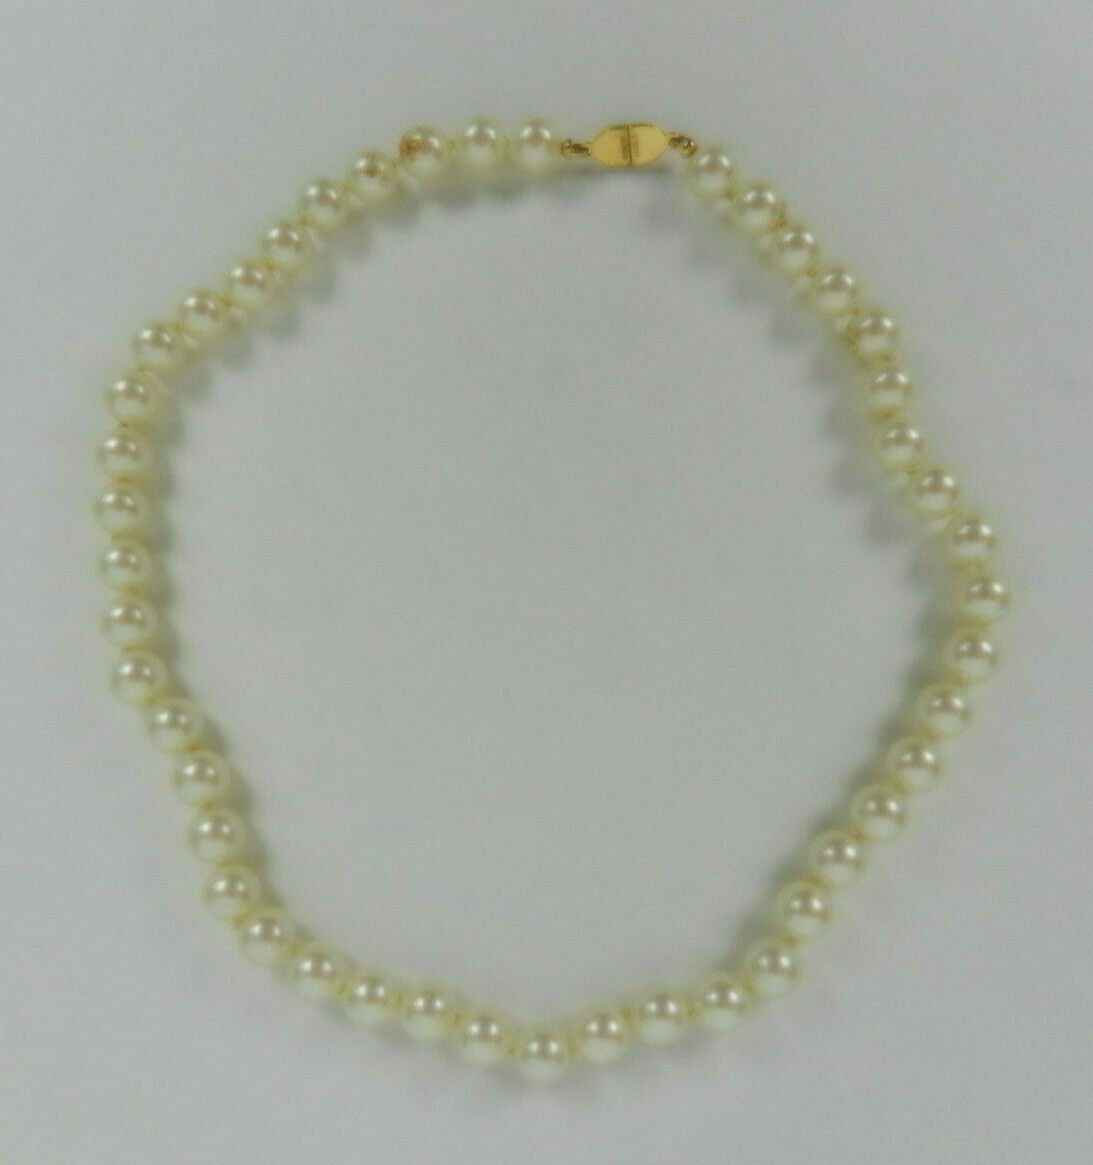 Monet Necklace Faux Pearl Knotted Beads With Gold Clasp Short Strand 16.25 in.